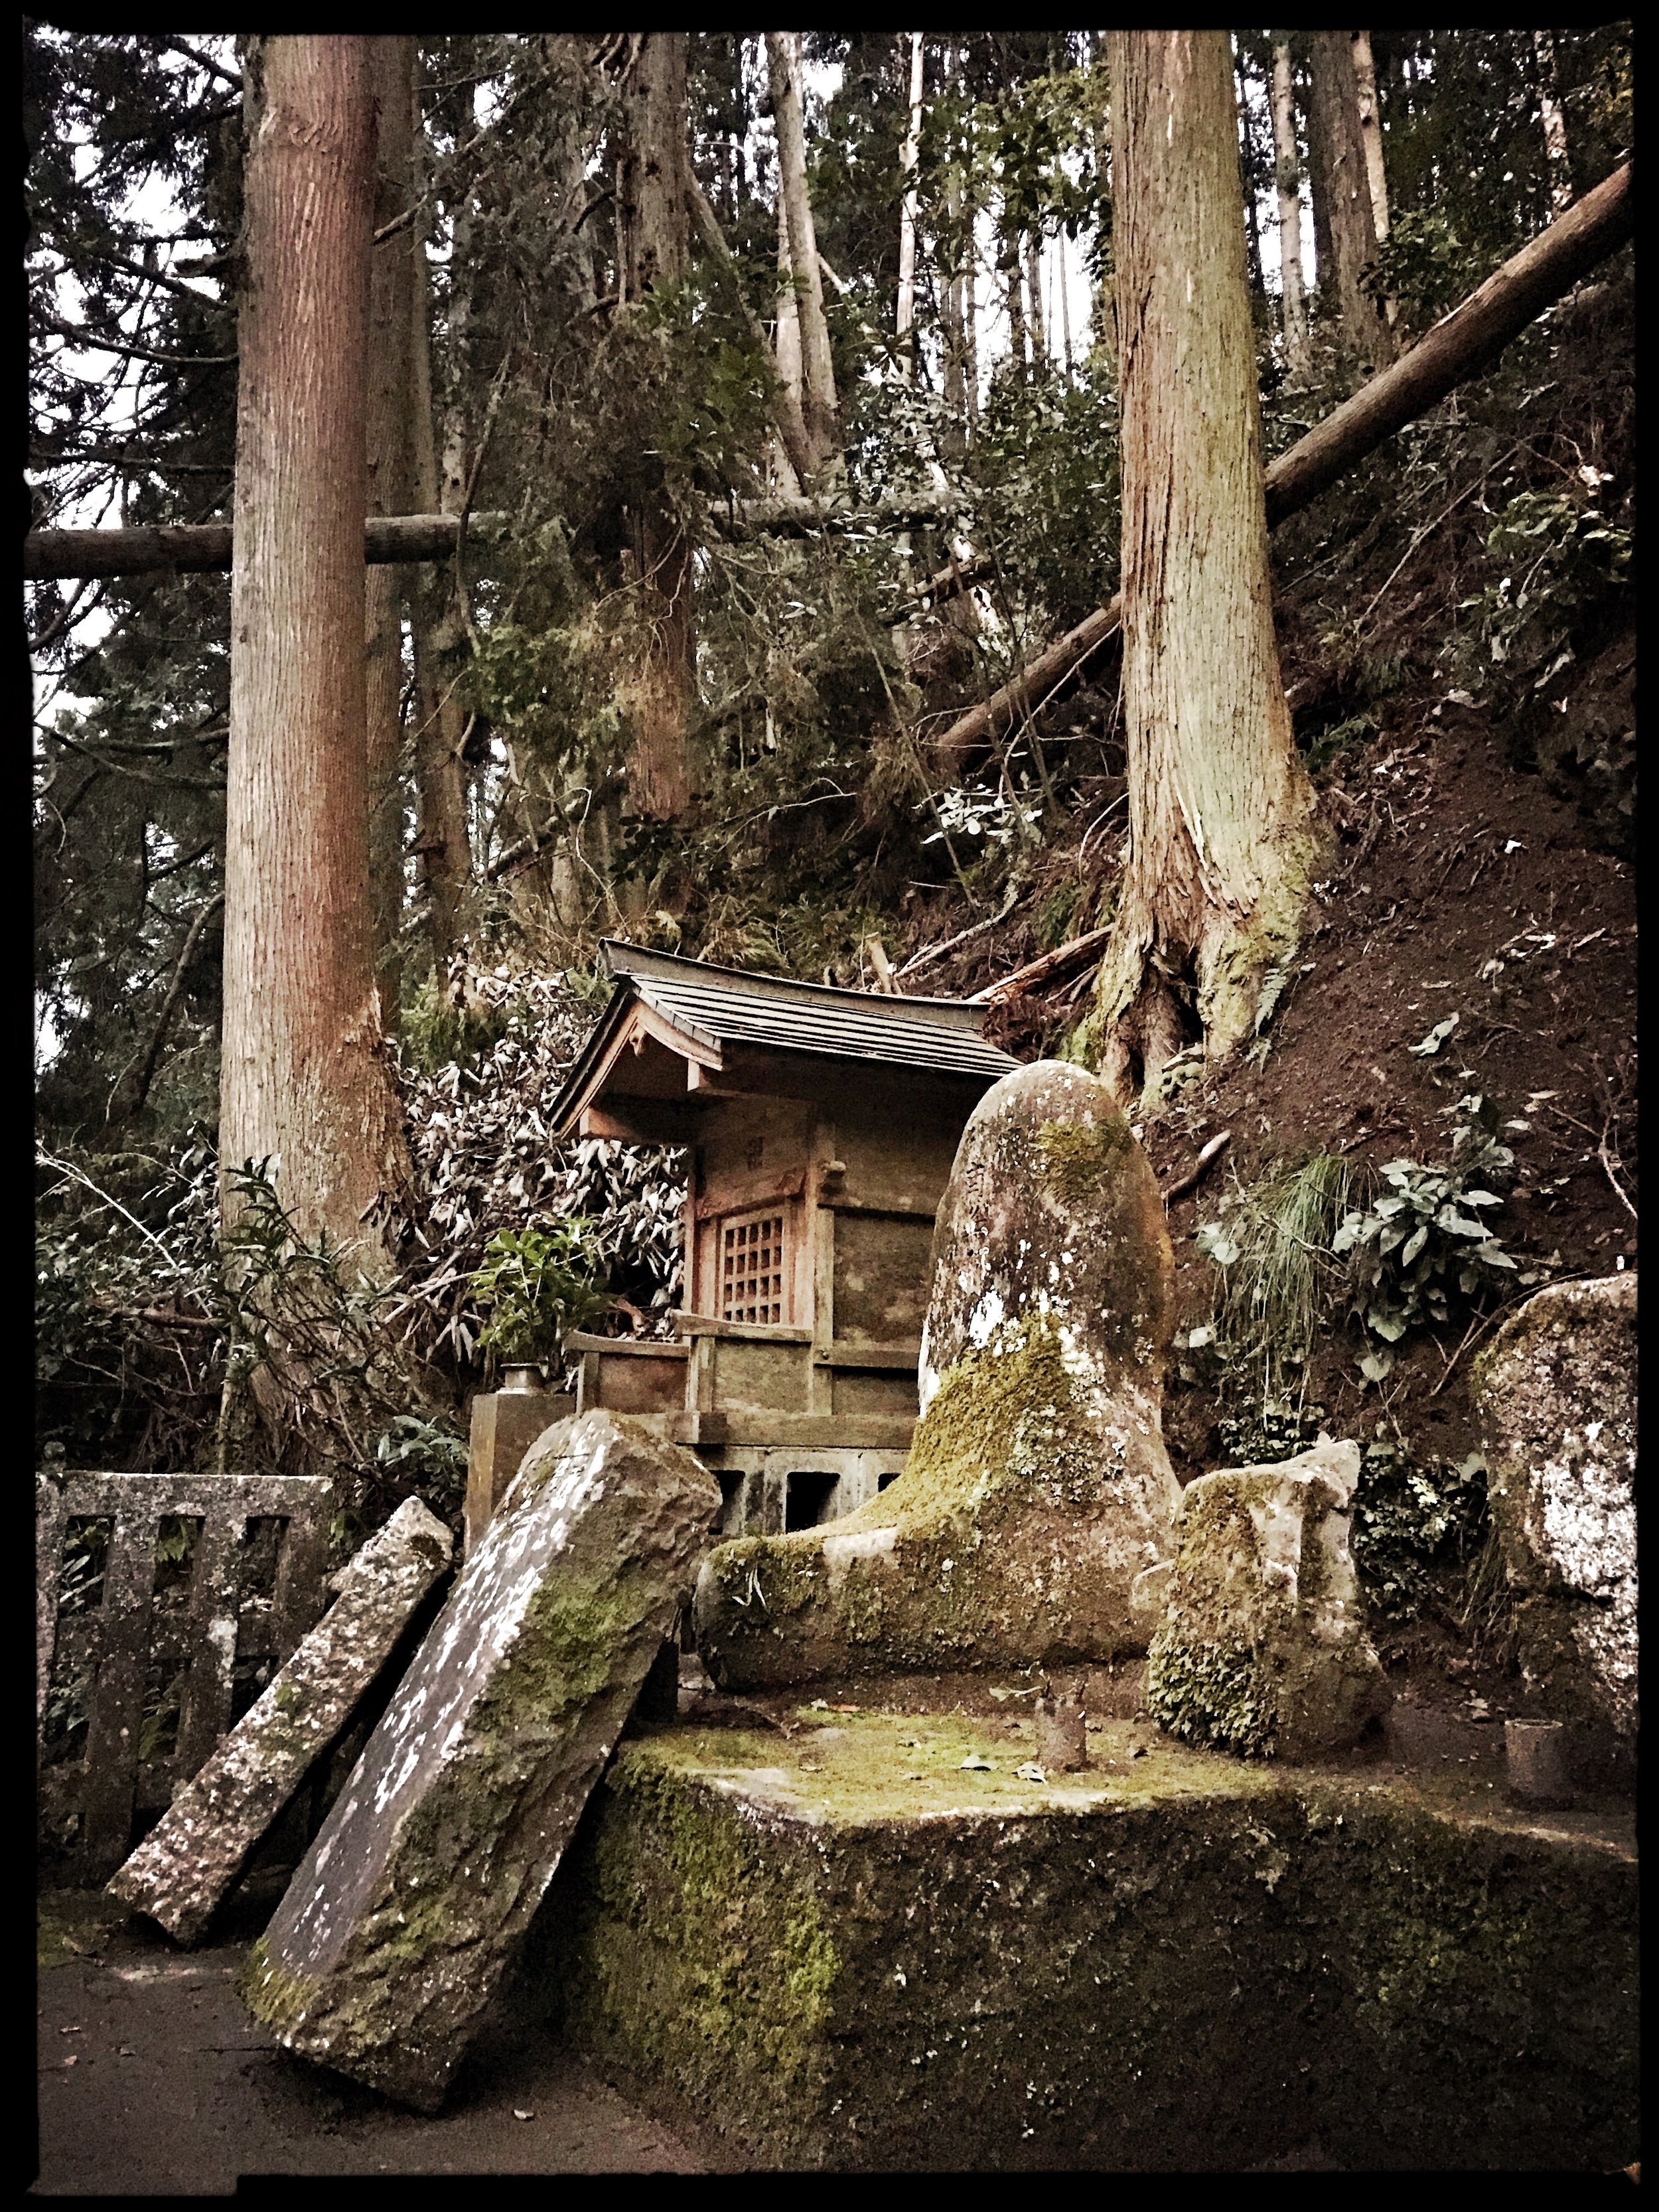 A damaged shrine along the road that leads to the temple grounds.